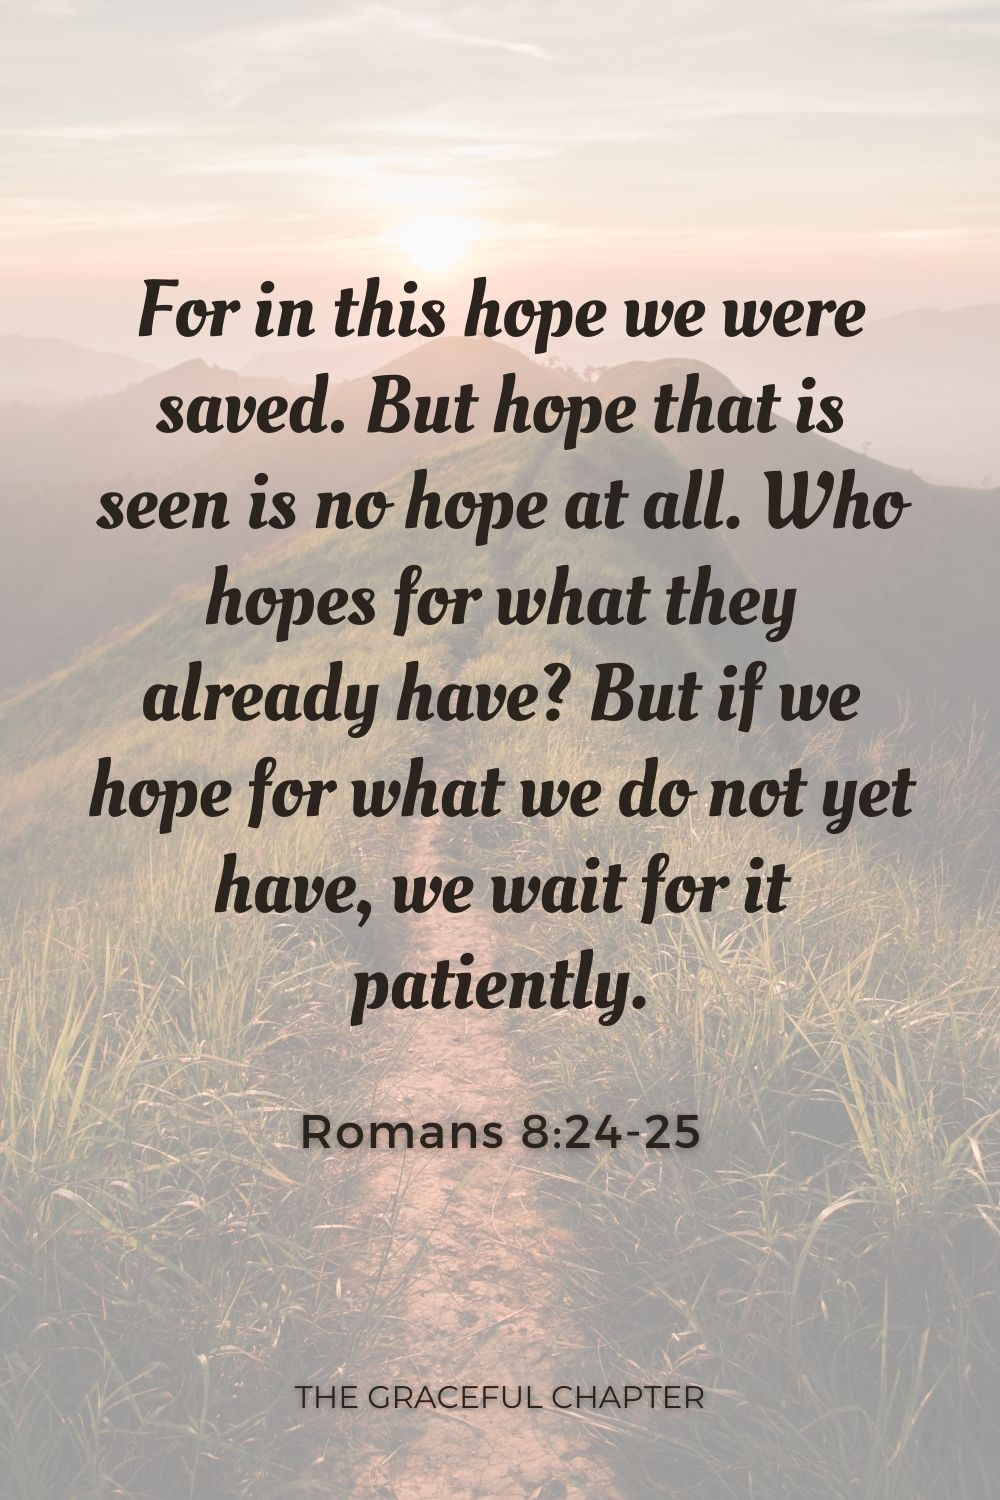 For in this hope we were saved. But hope that is seen is no hope at all. Who hopes for what they already have? But if we hope for what we do not yet have, we wait for it patiently. Romans 8:24-25